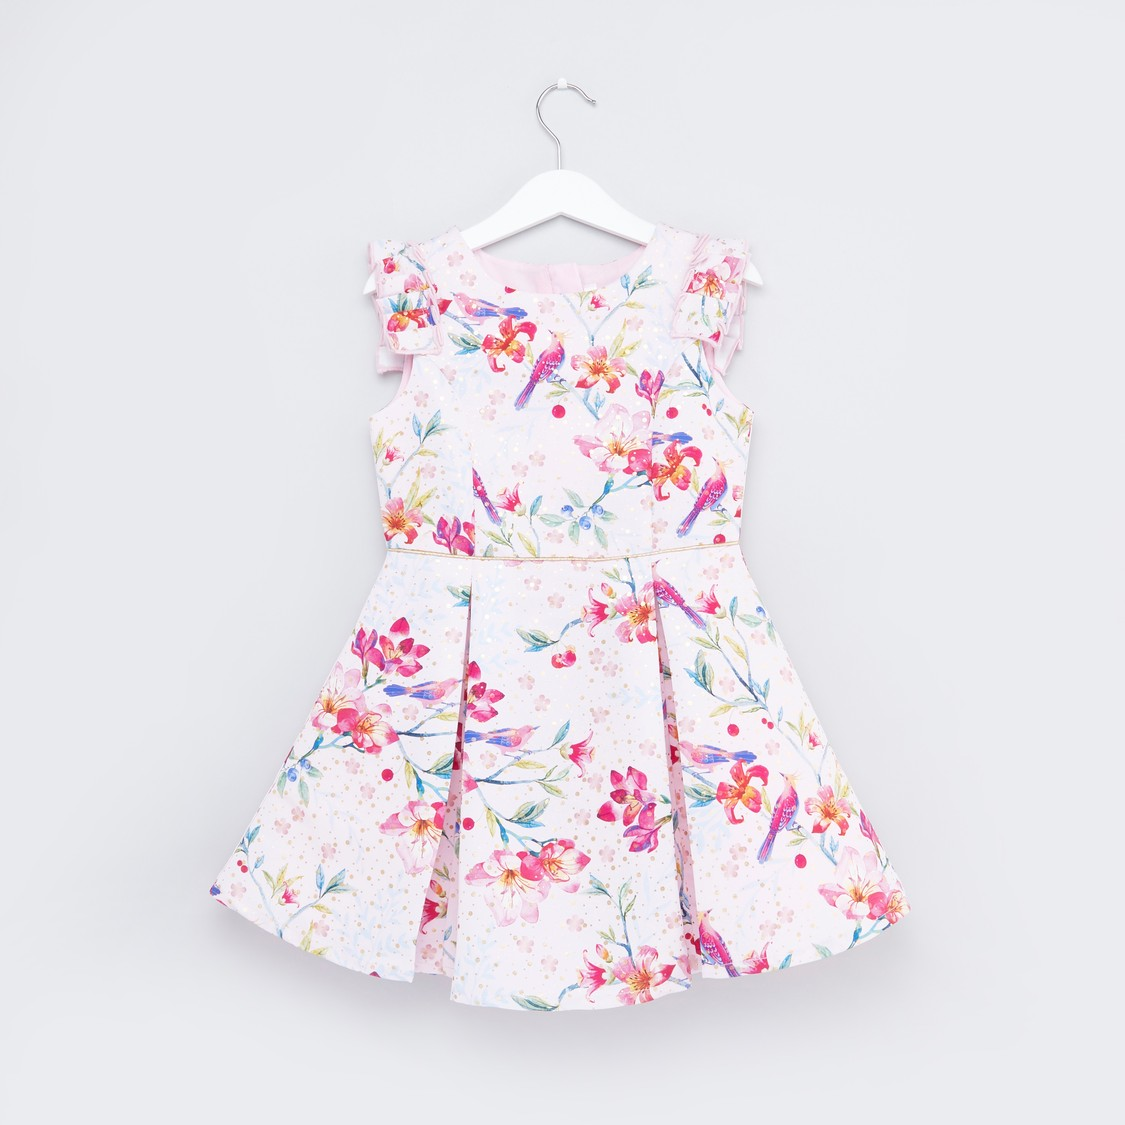 Floral Printed Sleeveless Dress with Ruffle Detail